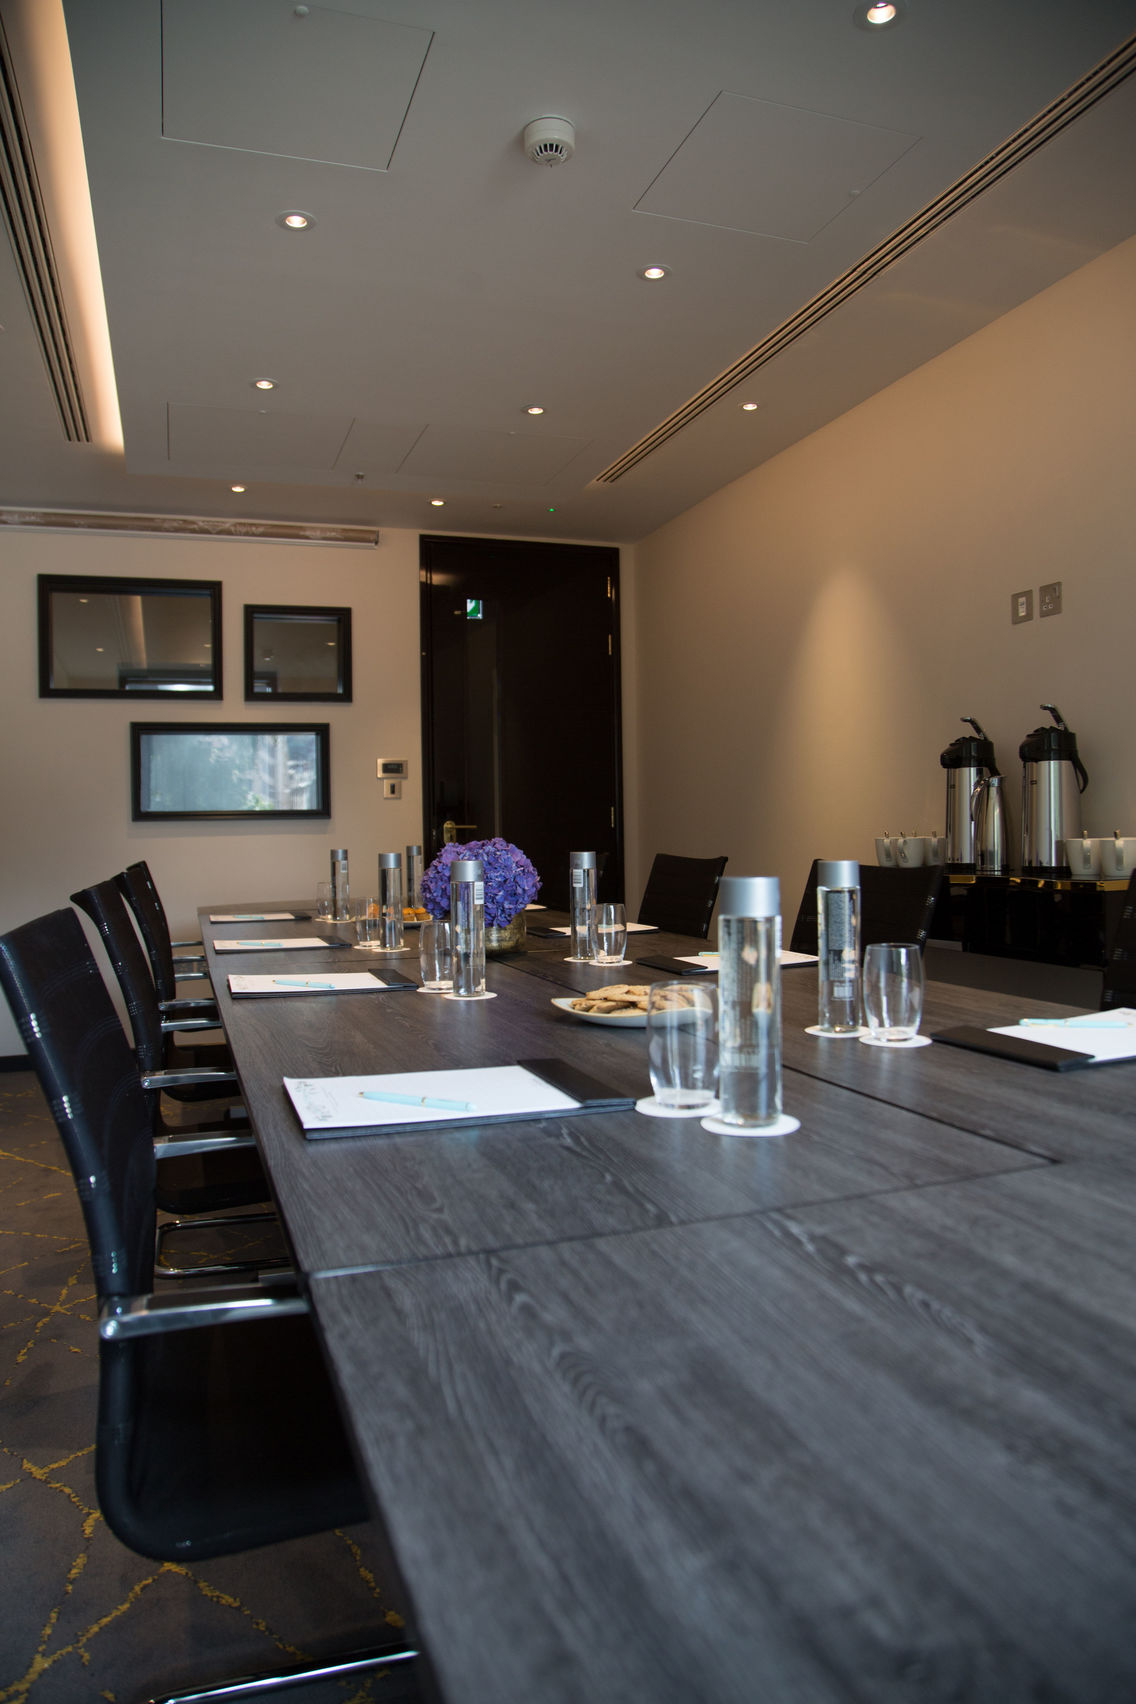 A meeting room with a long grey table